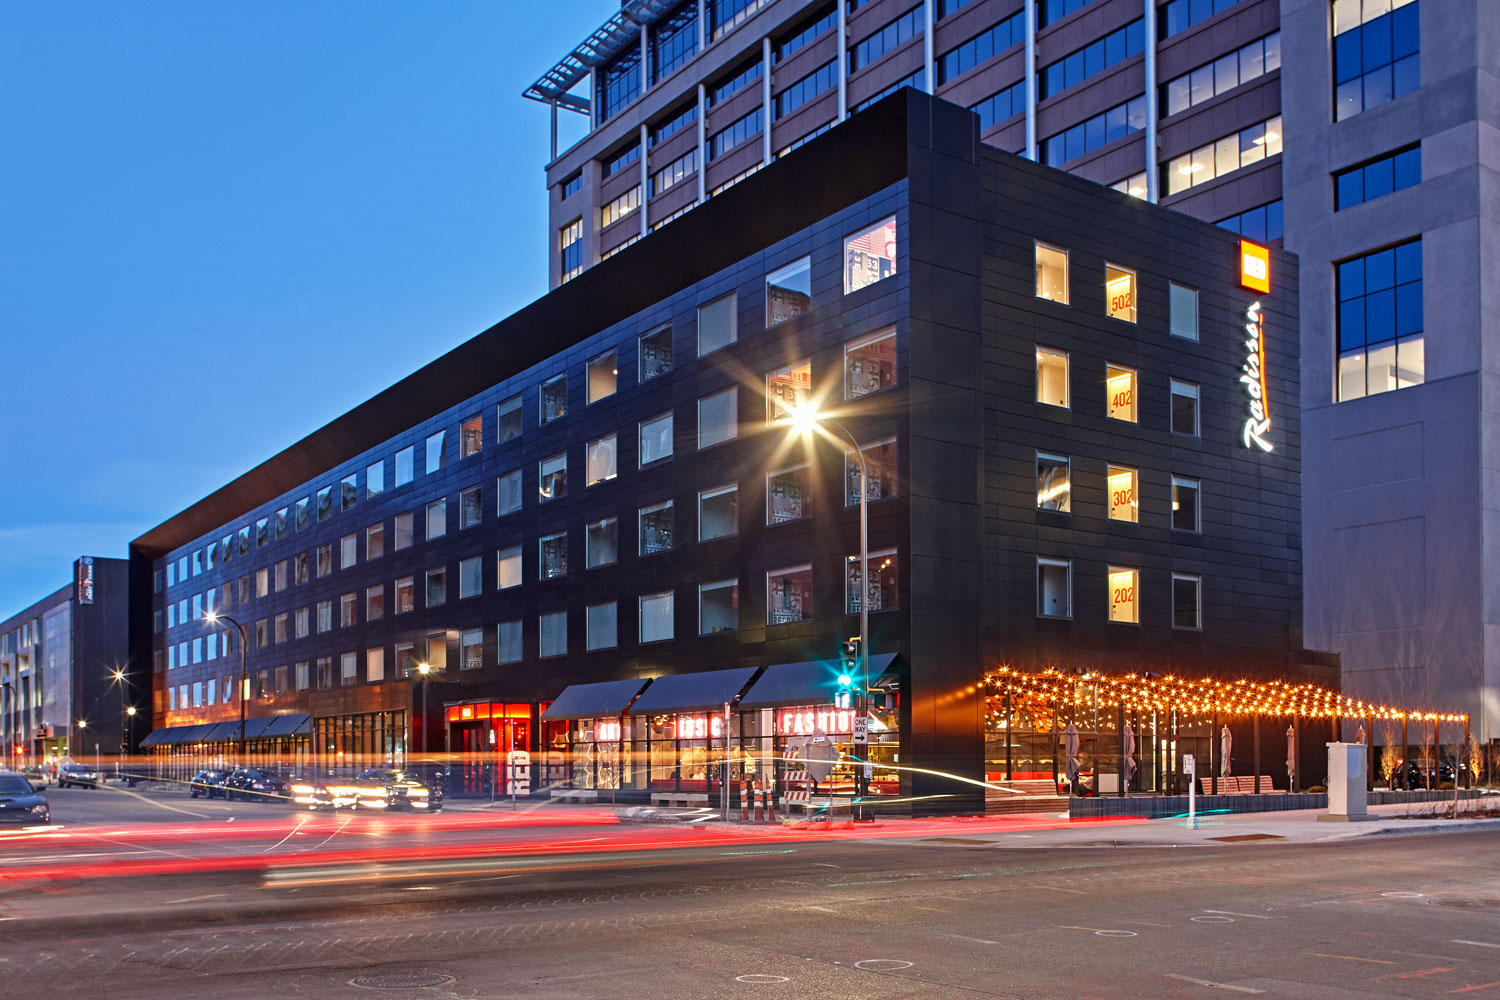 Radison RED Hotel, Minneapolis, Alucobond Plus Focus Black, ESG Architecture Design, Atomic Sheet Metal, Ryan Companies US, Bergerson Photography